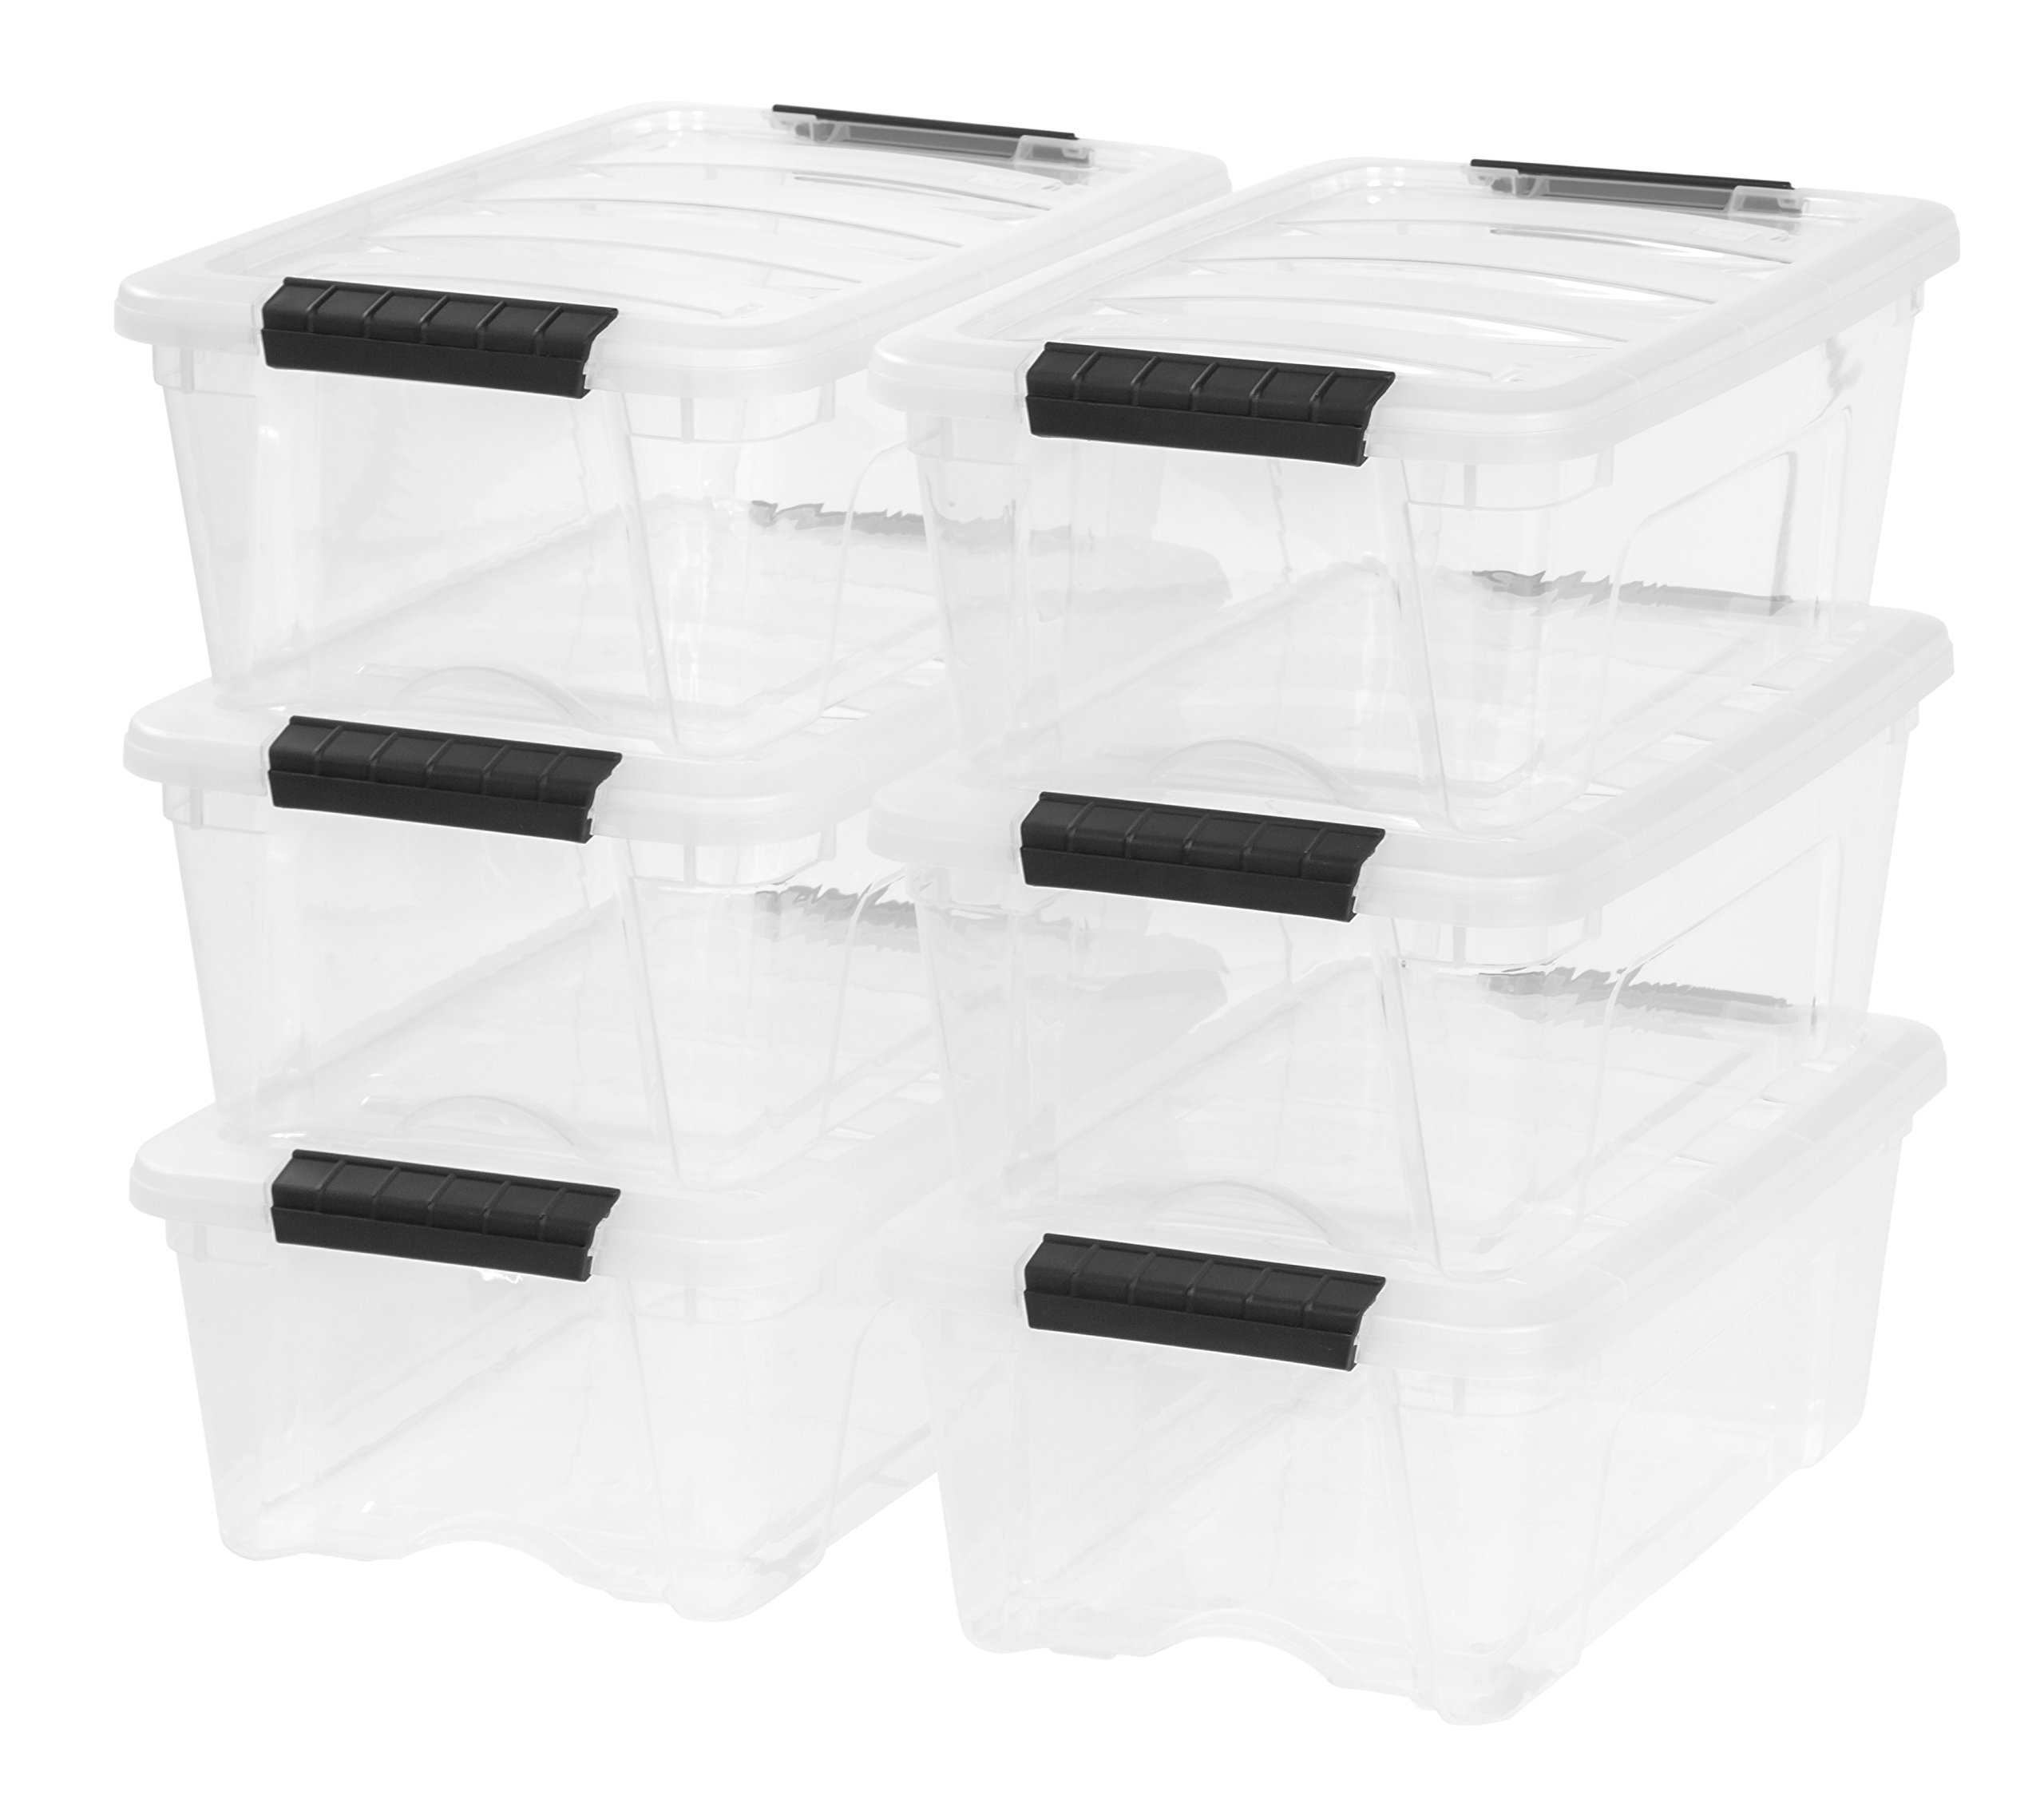 IRIS 12 Quart Stack & Pull Box, 6 Pack by IRIS USA, Inc.